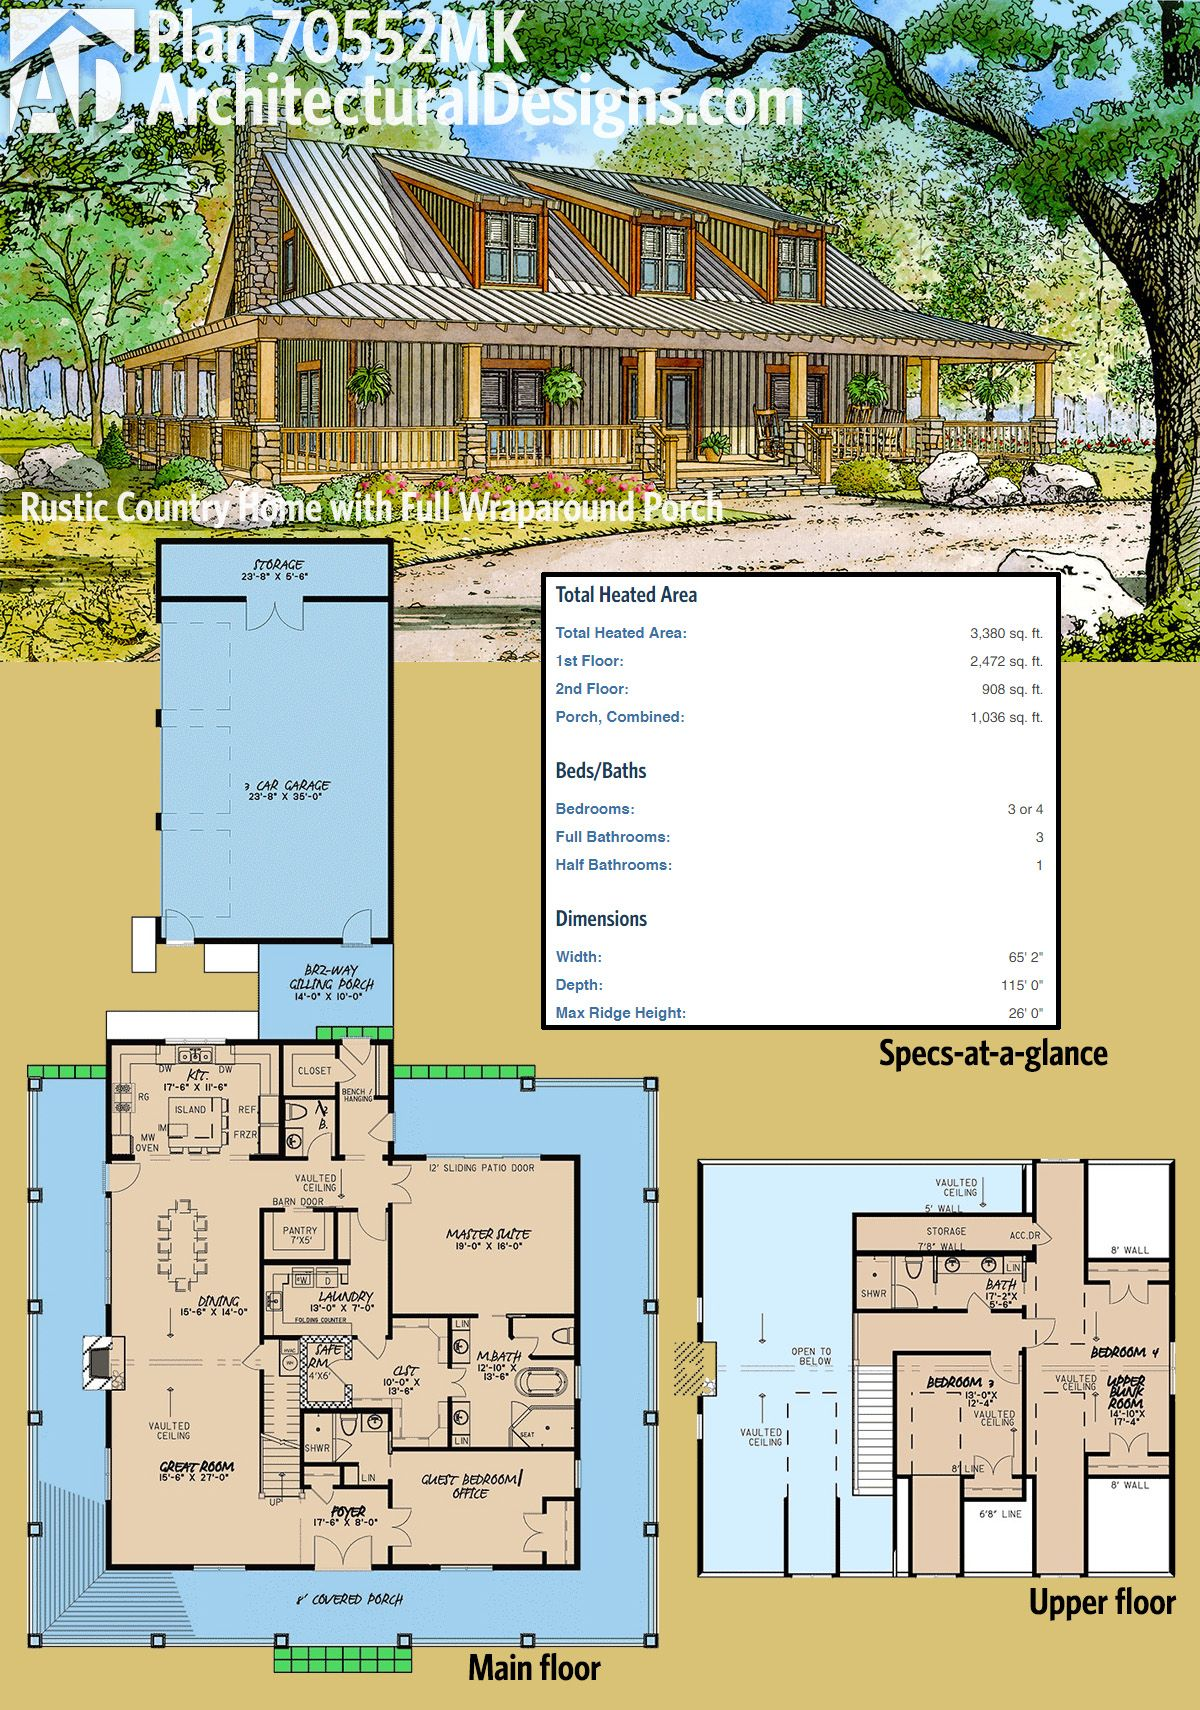 Architectural Designs Rustic Country Home Plan 70552mk Has A Full Wraparound Porch And A Bunk Room Upstairs Country House Plans Rustic House Plans House Plans